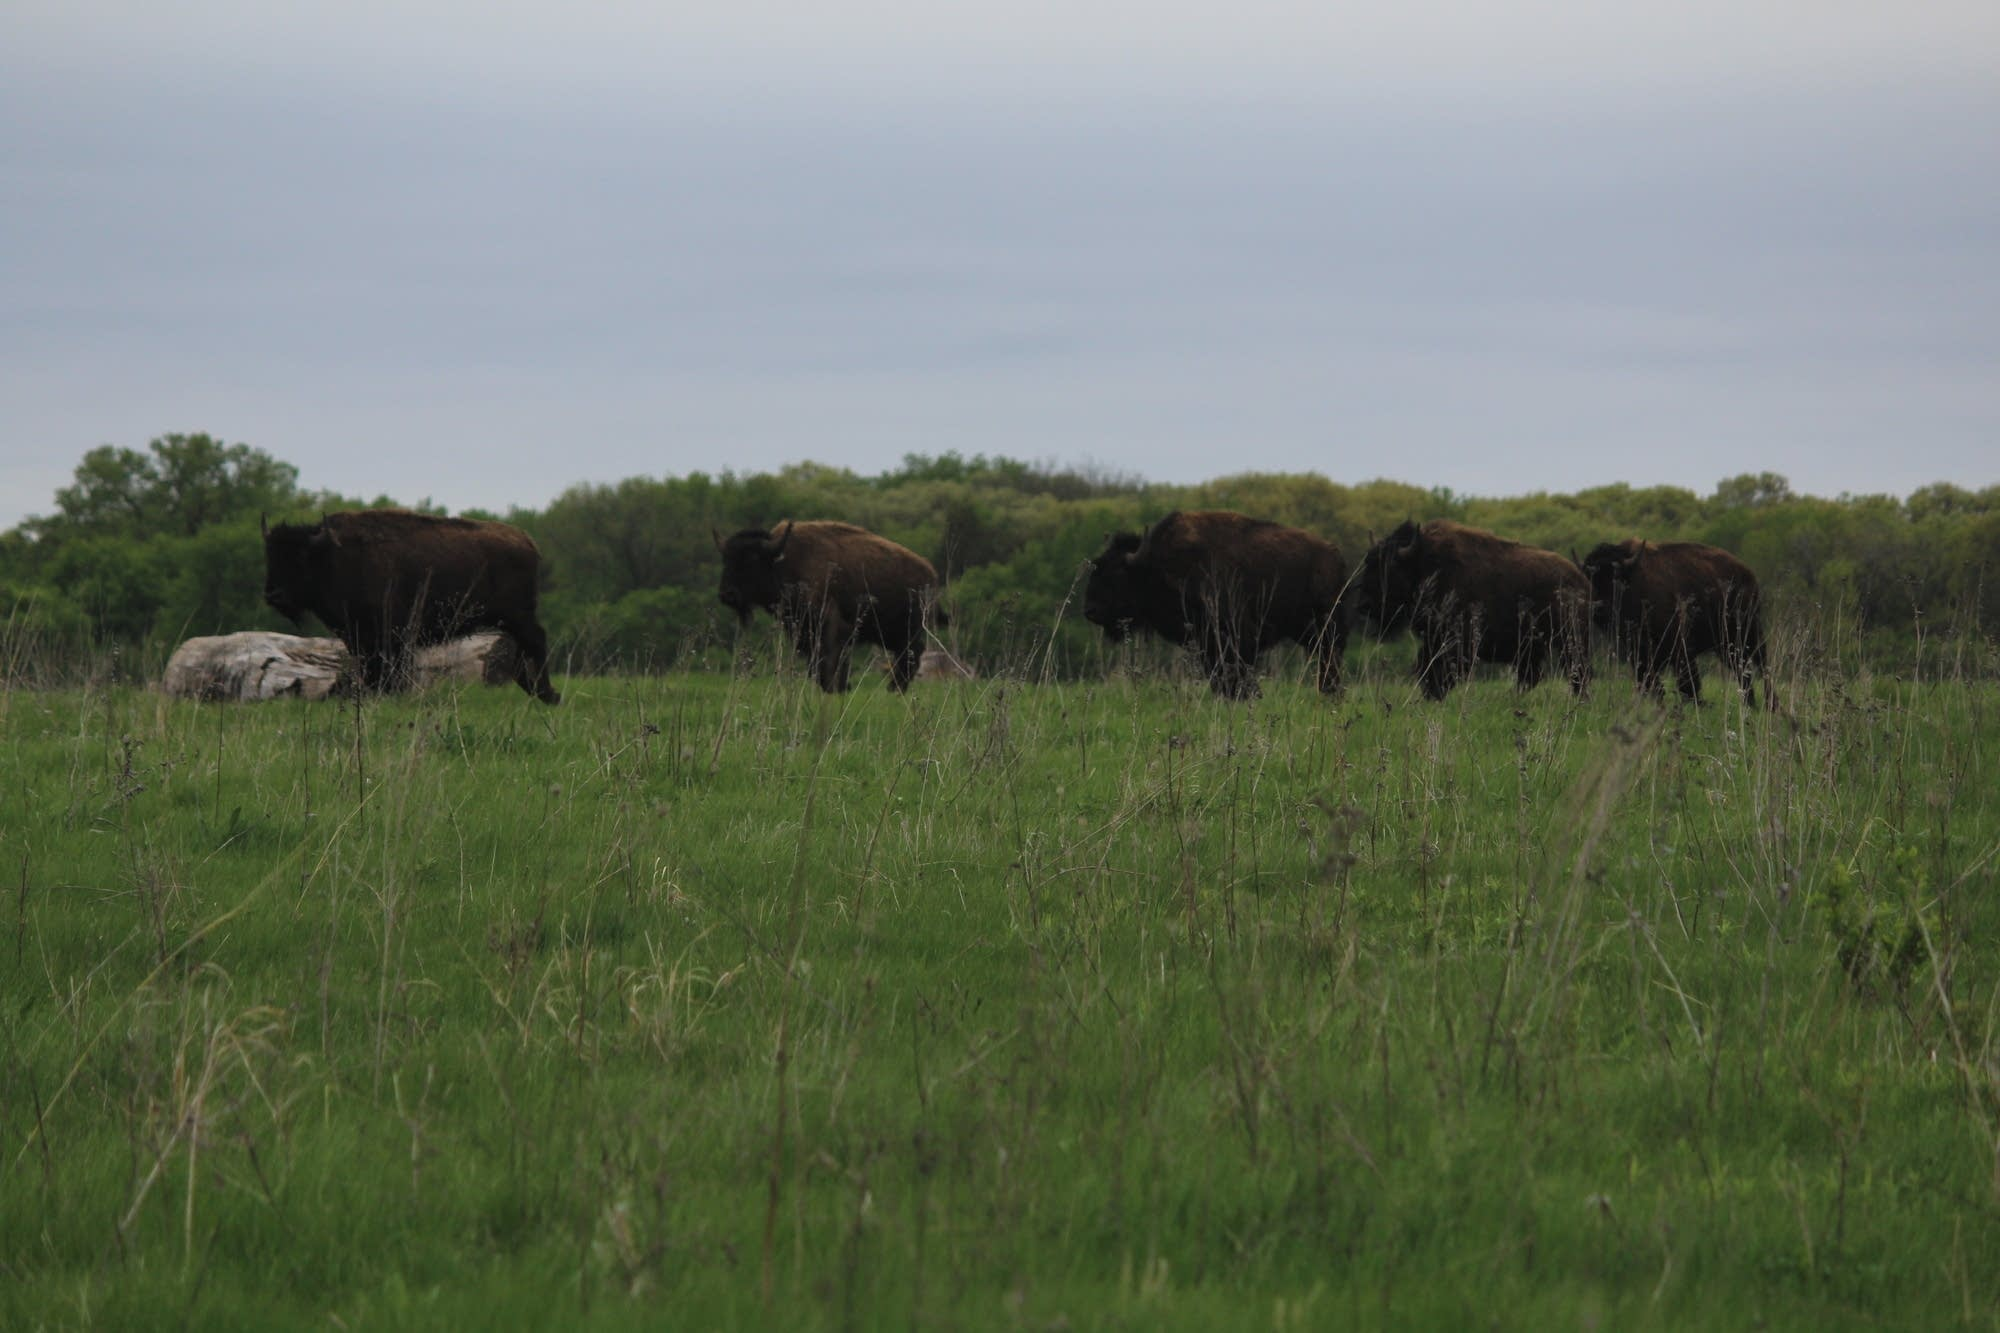 Bison stand in a field at the Belwin Conservancy